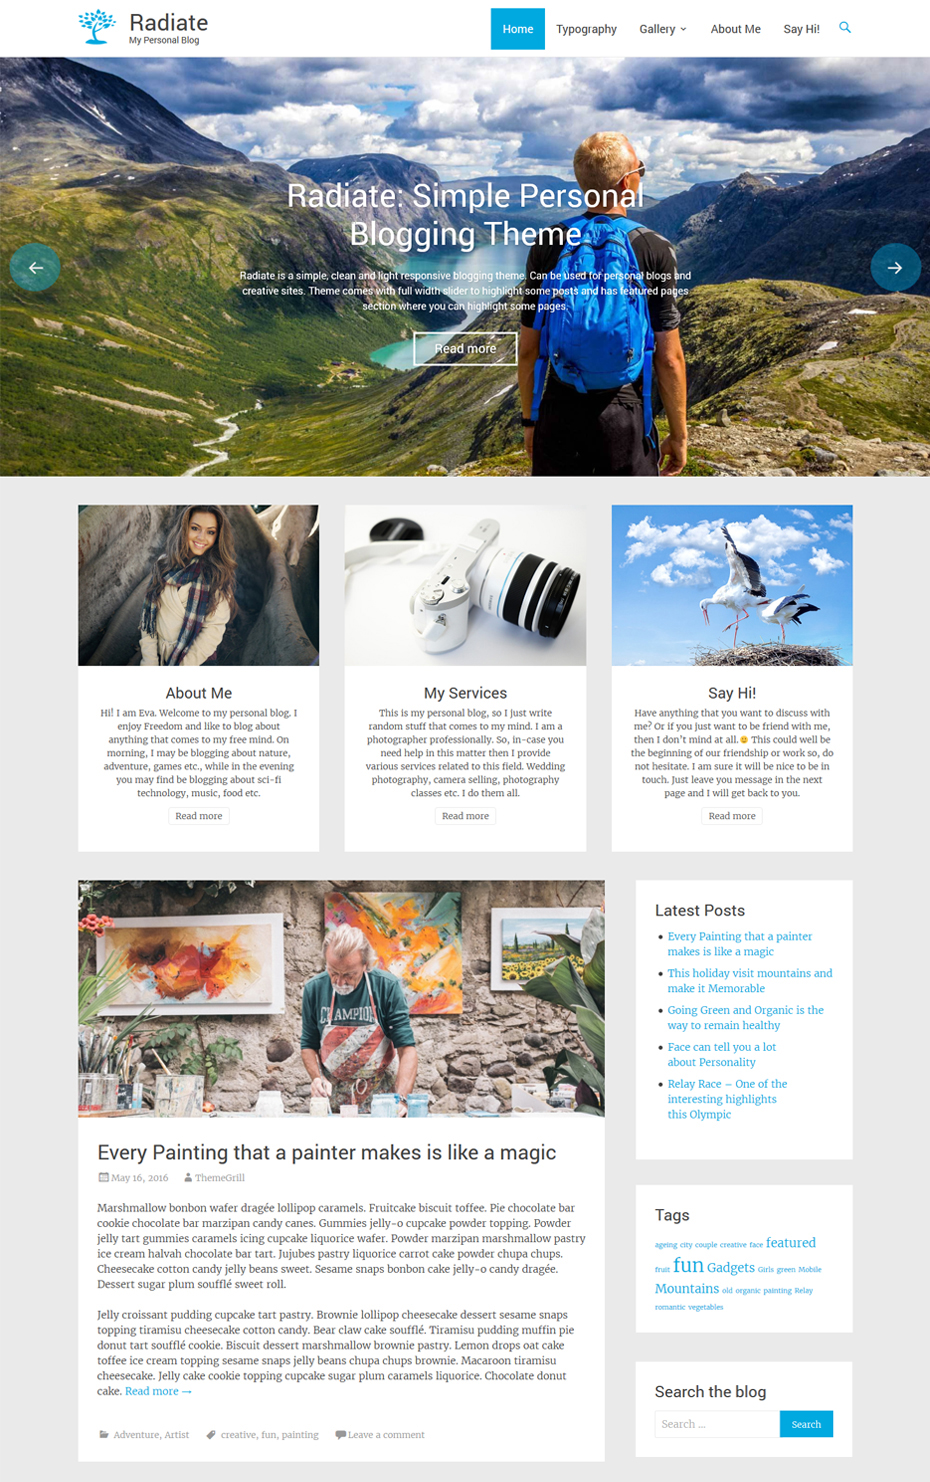 How to create a featured content gallery in wordpress - Radiate S Eye Catching Typography And Clean Minimal Design Lets You Focus On Writing Engaging Content The Theme Is Well Suited For Personal Blogs